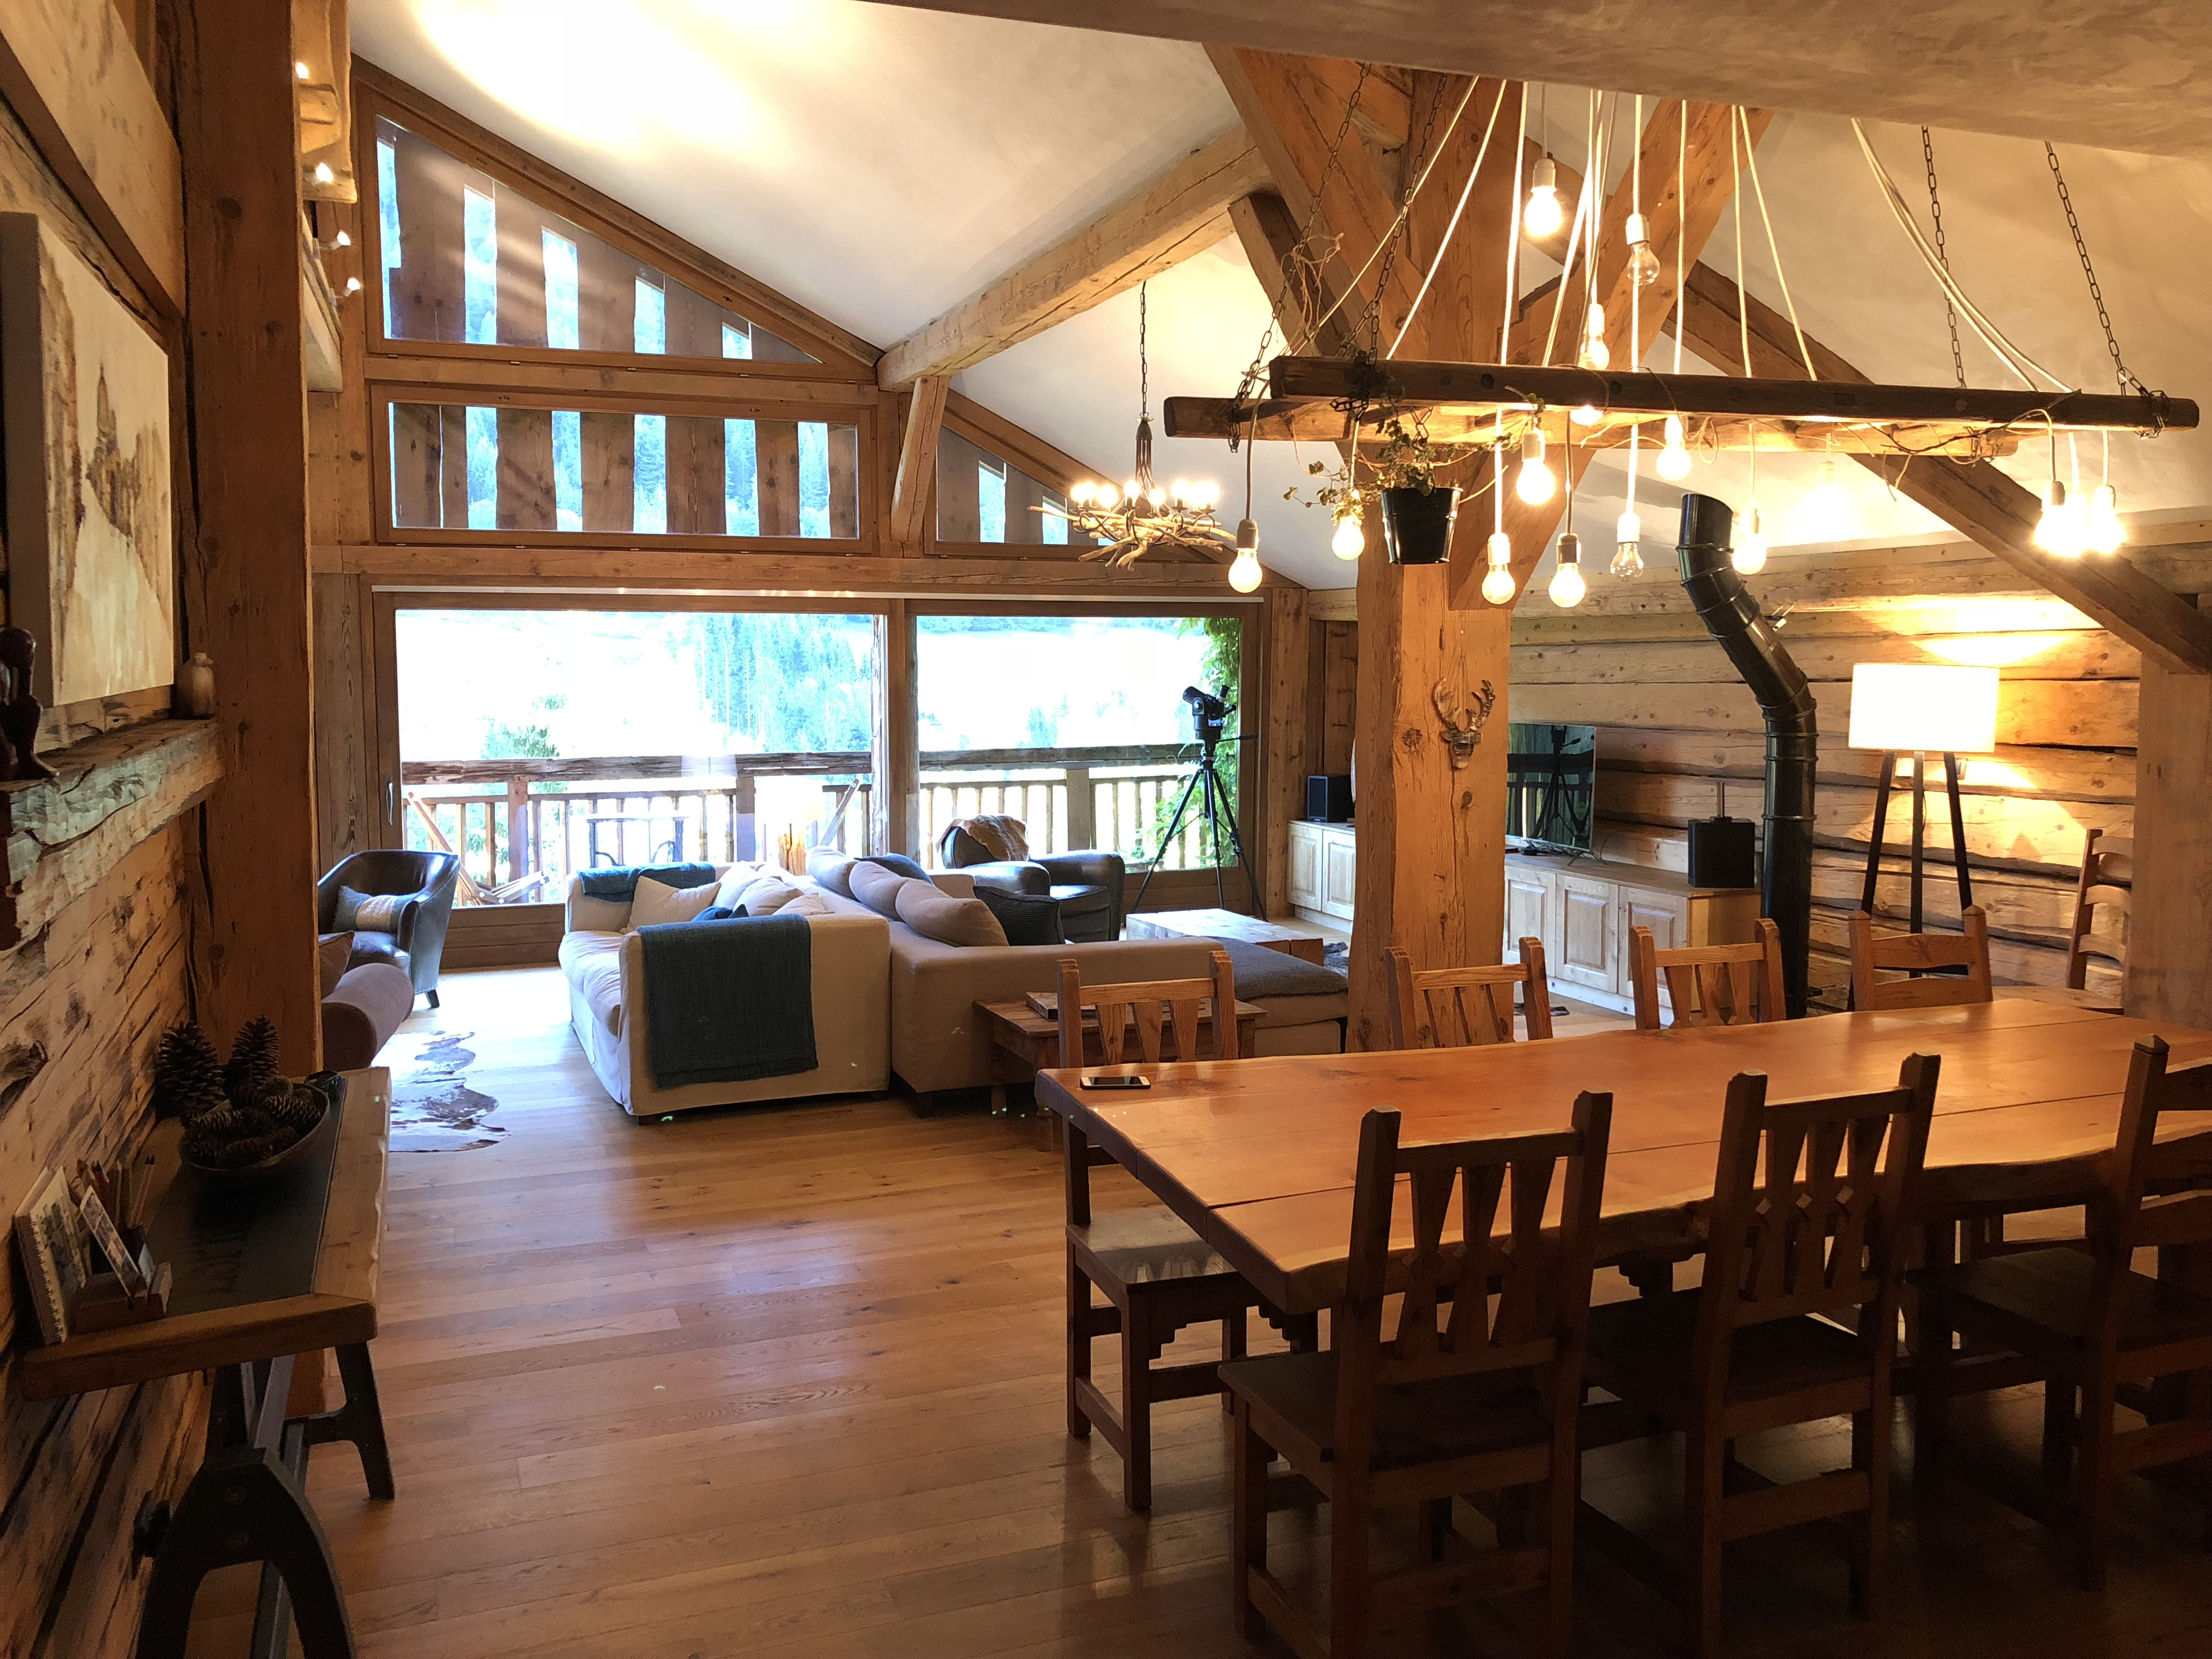 The communal space at Chalet Cannelle